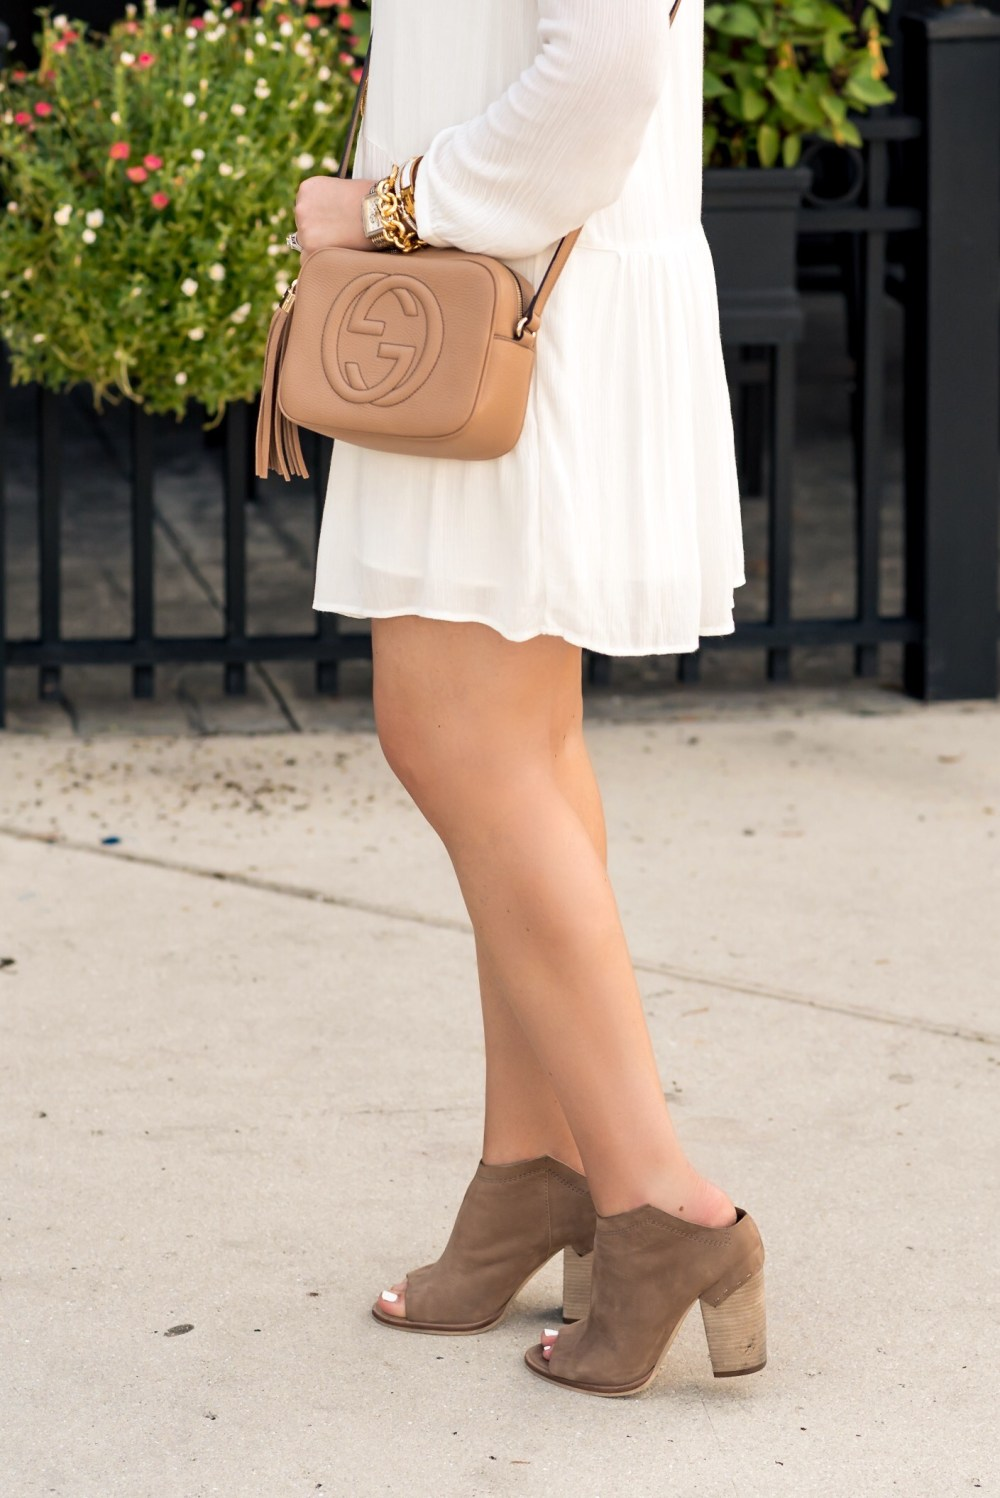 Gucci Disco Bag and Dolce Vita Booties- Fancy Things